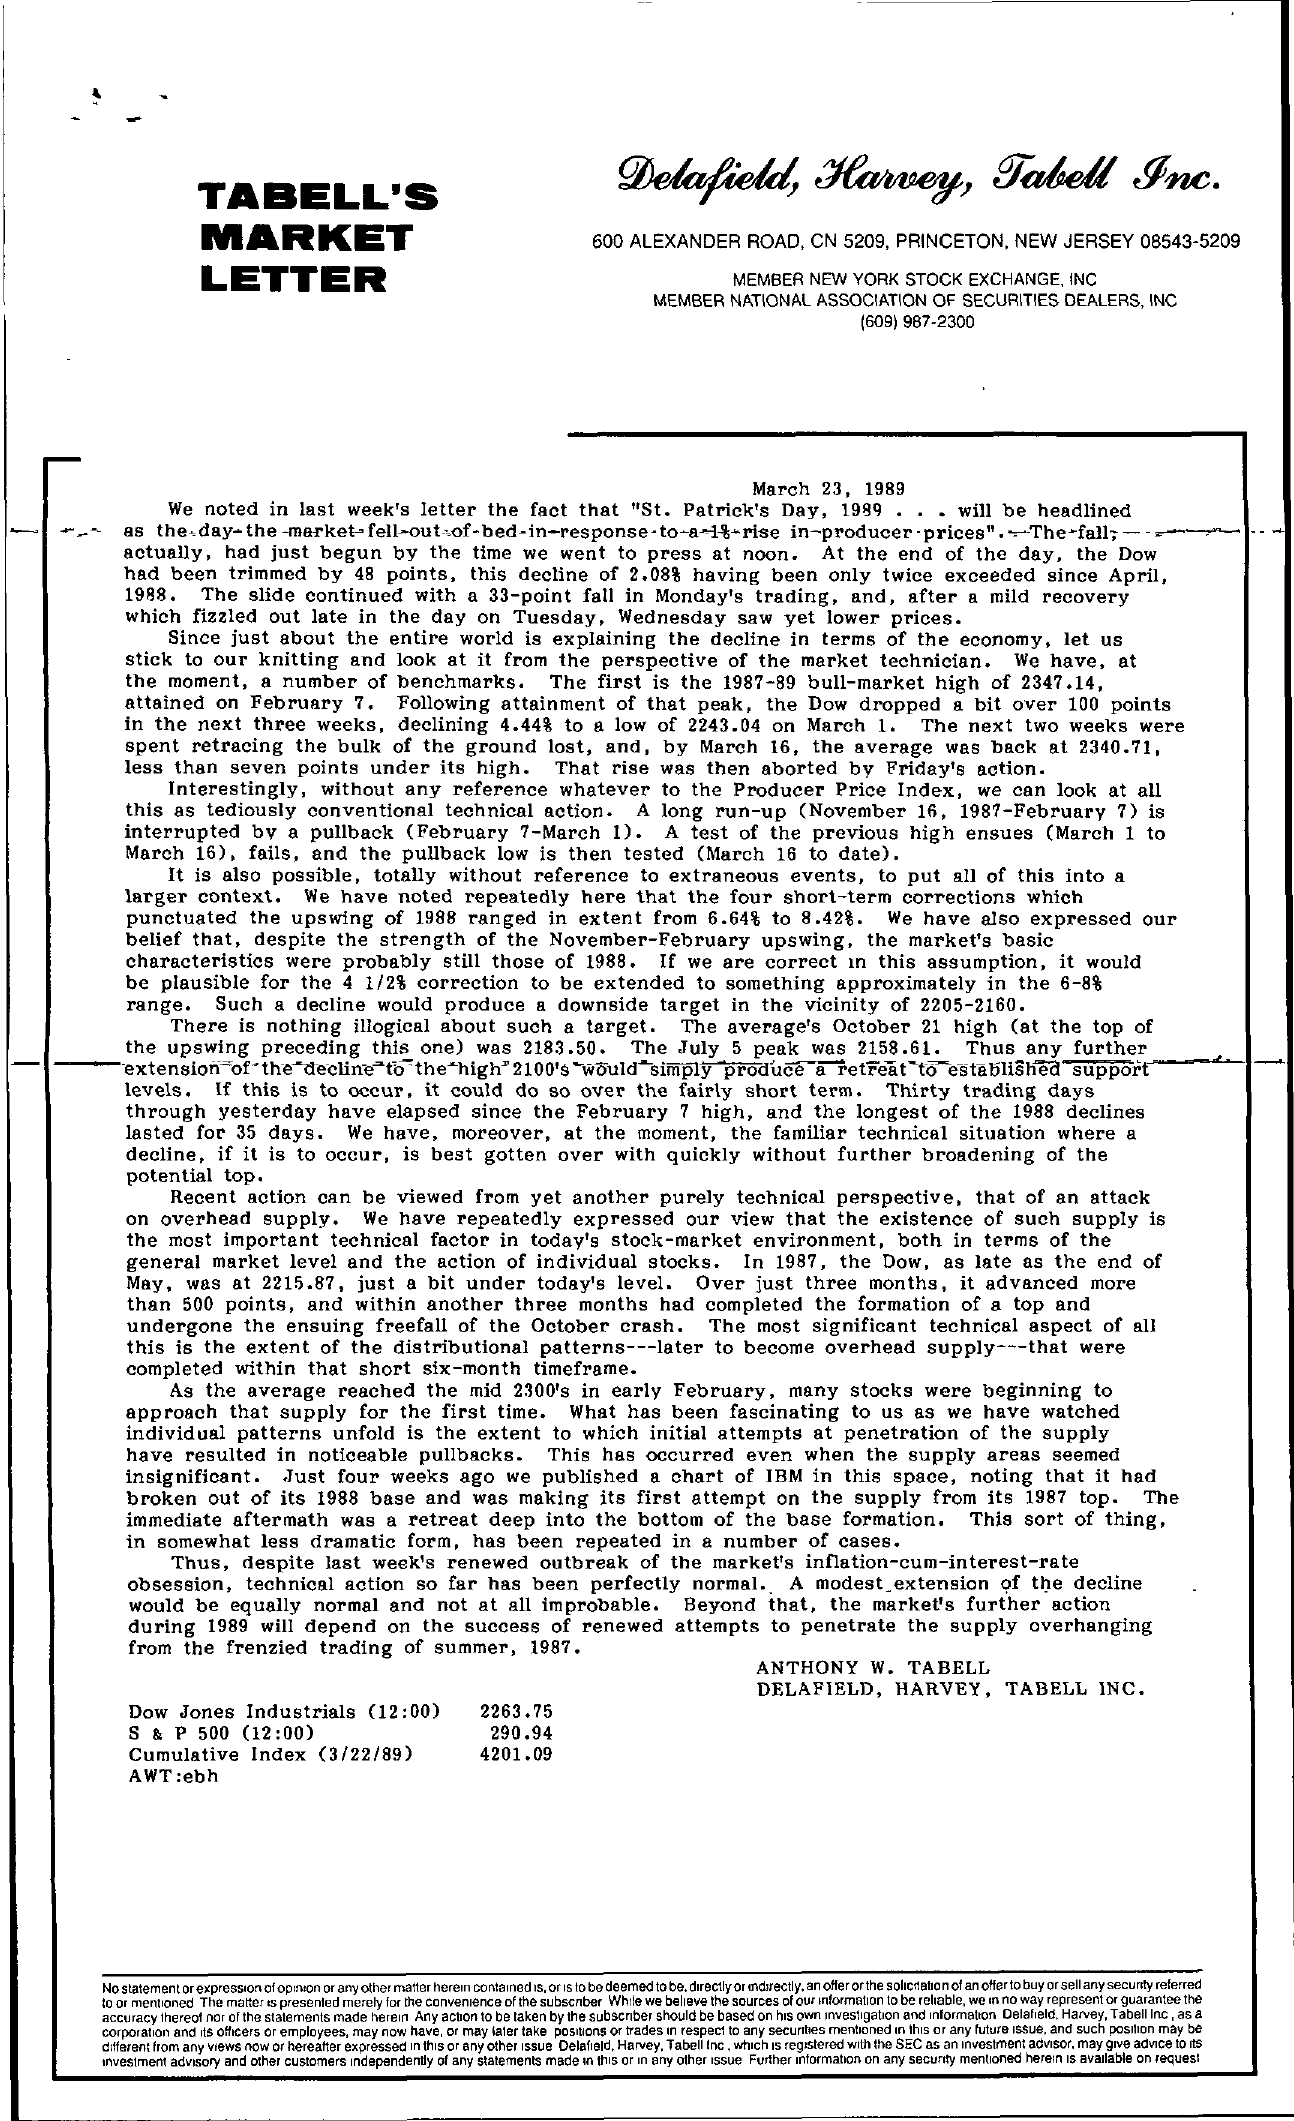 Tabell's Market Letter - March 23, 1989